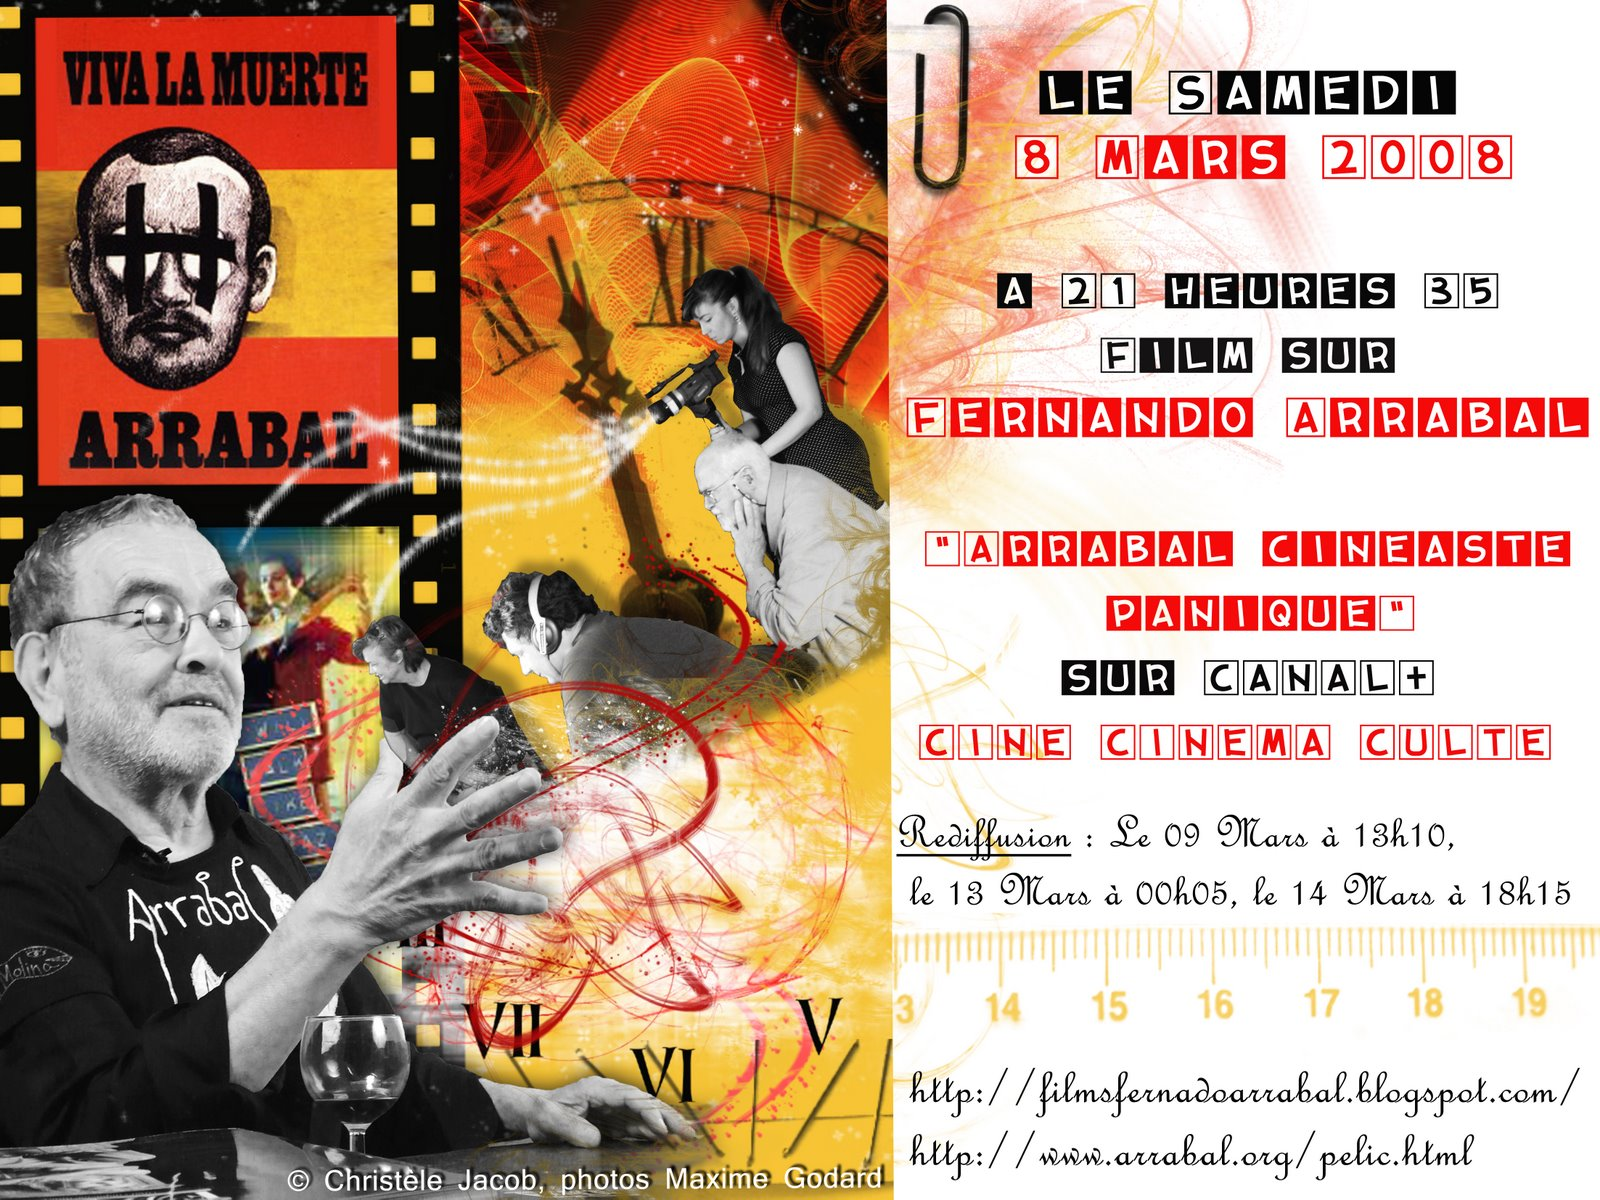 [affiche+canal+++arrabal+cine+cinema.jpg]